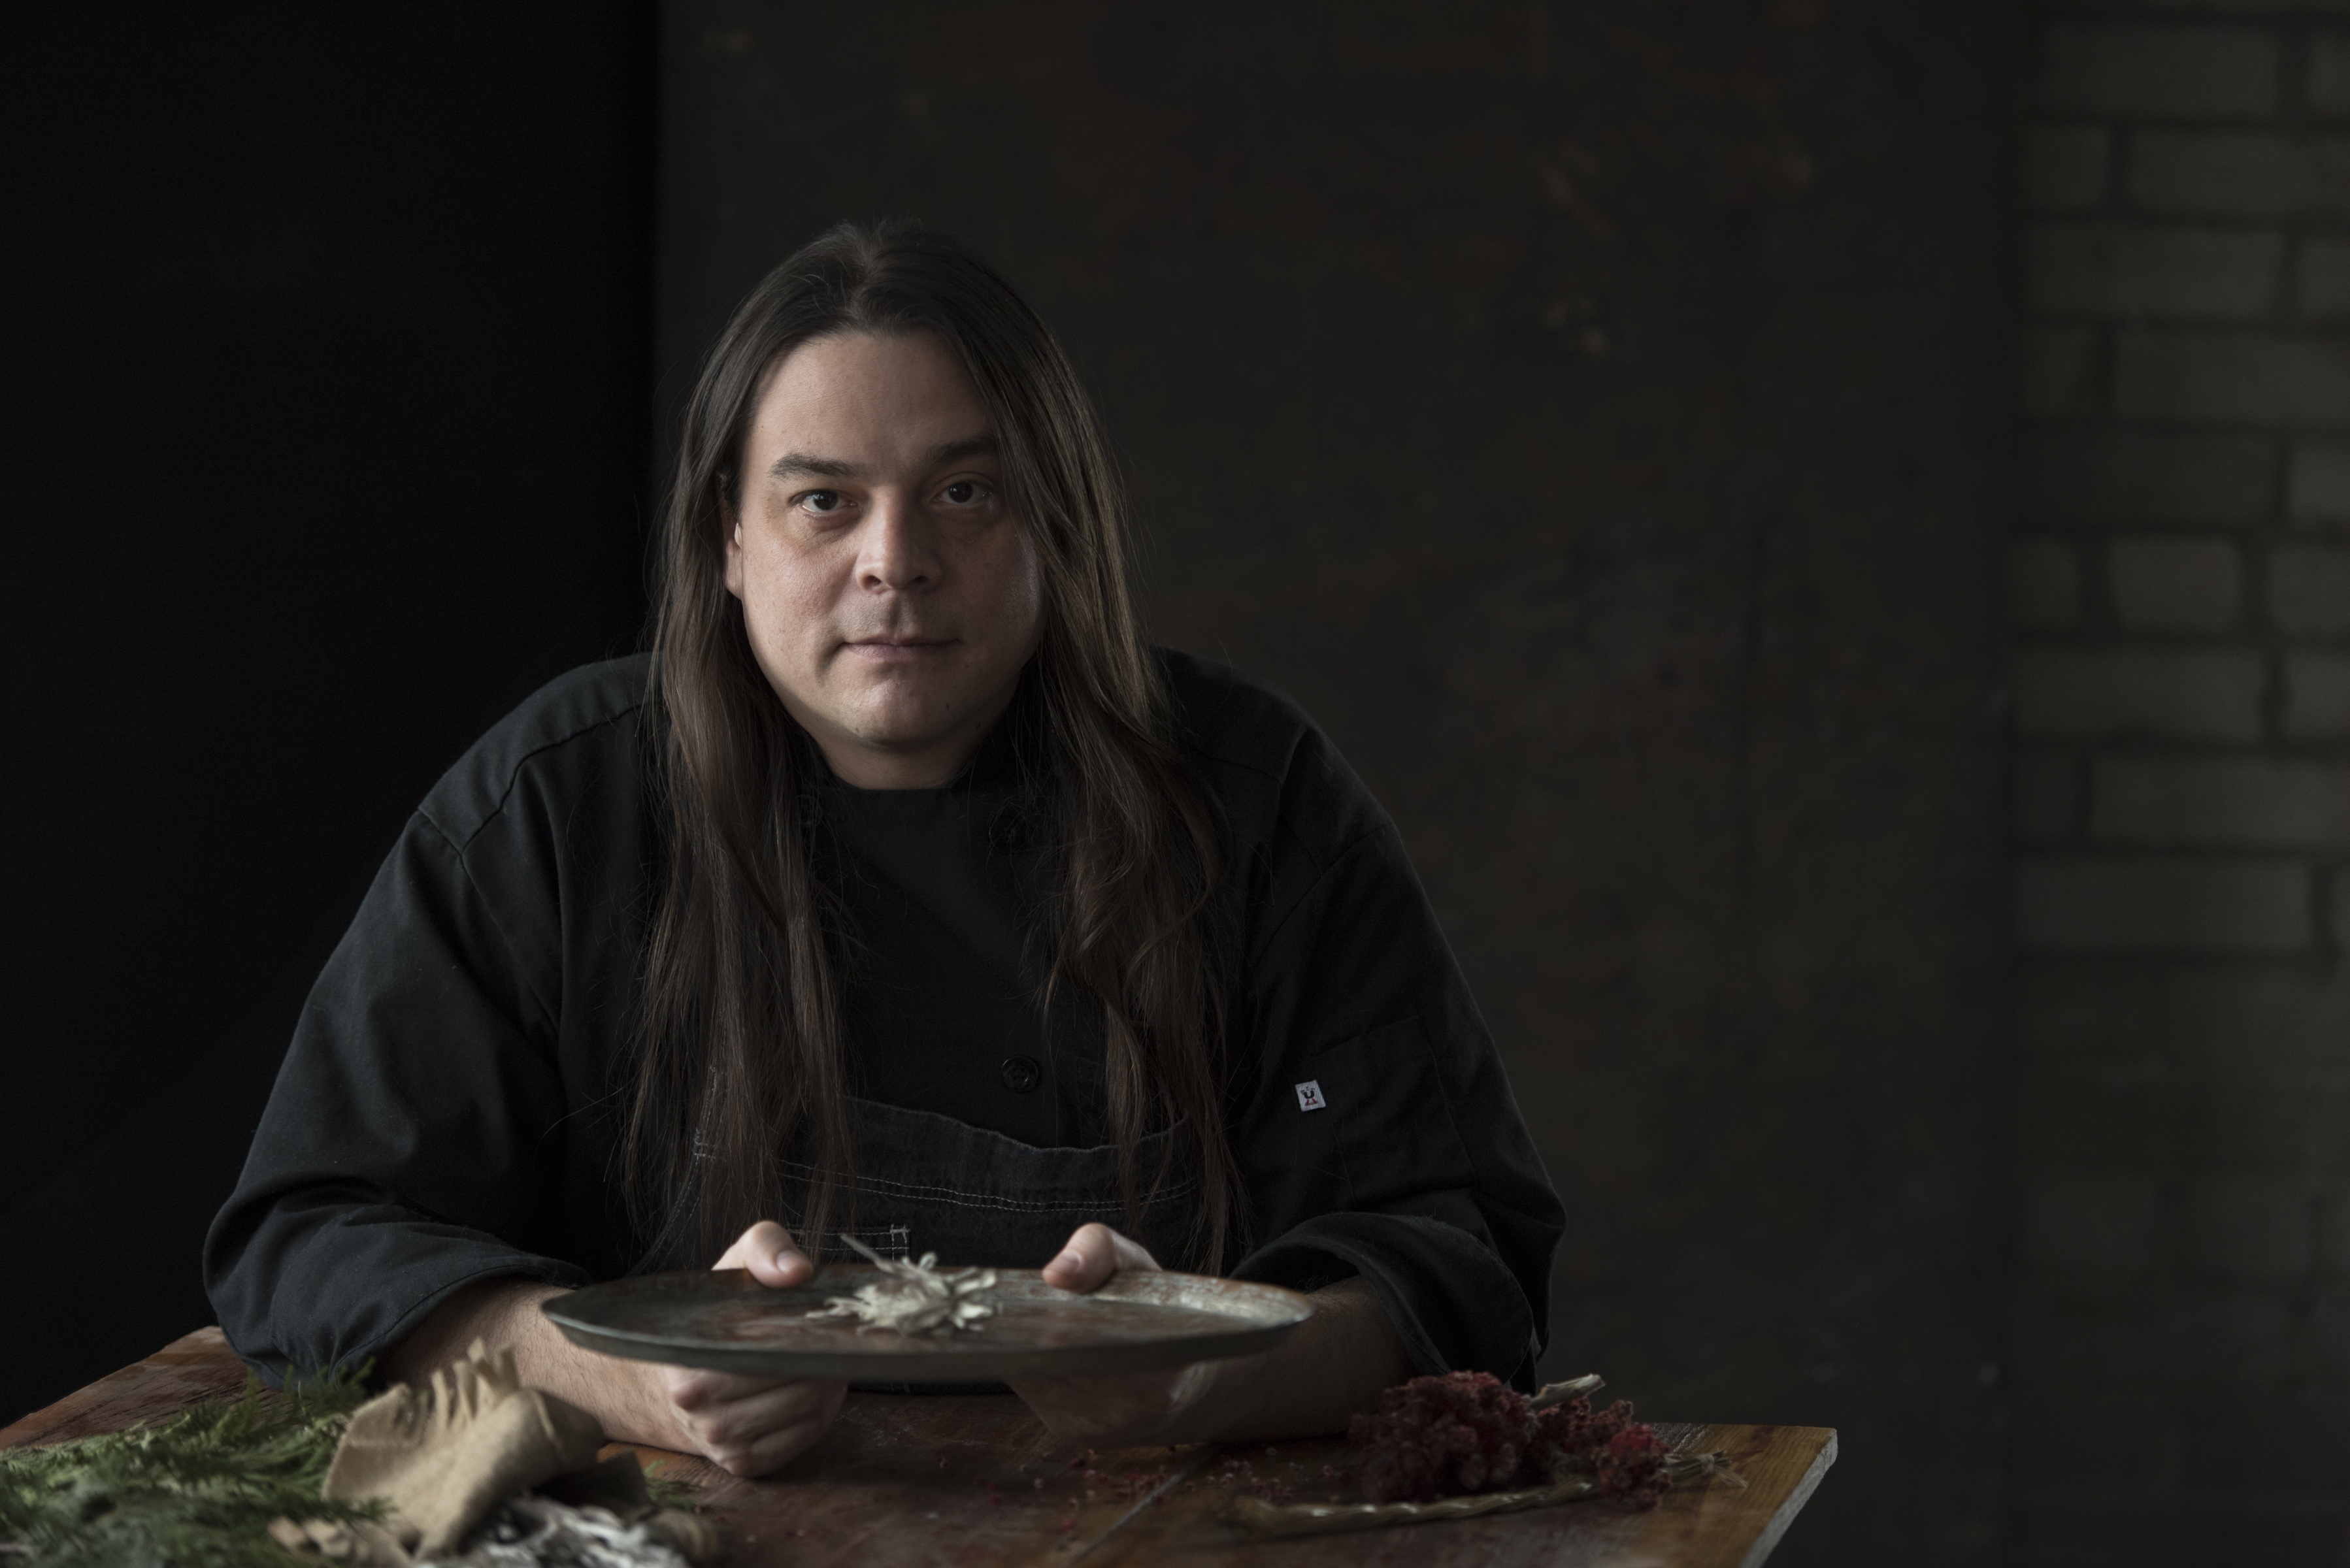 Man with long hair sitting behind table with a dark black background.